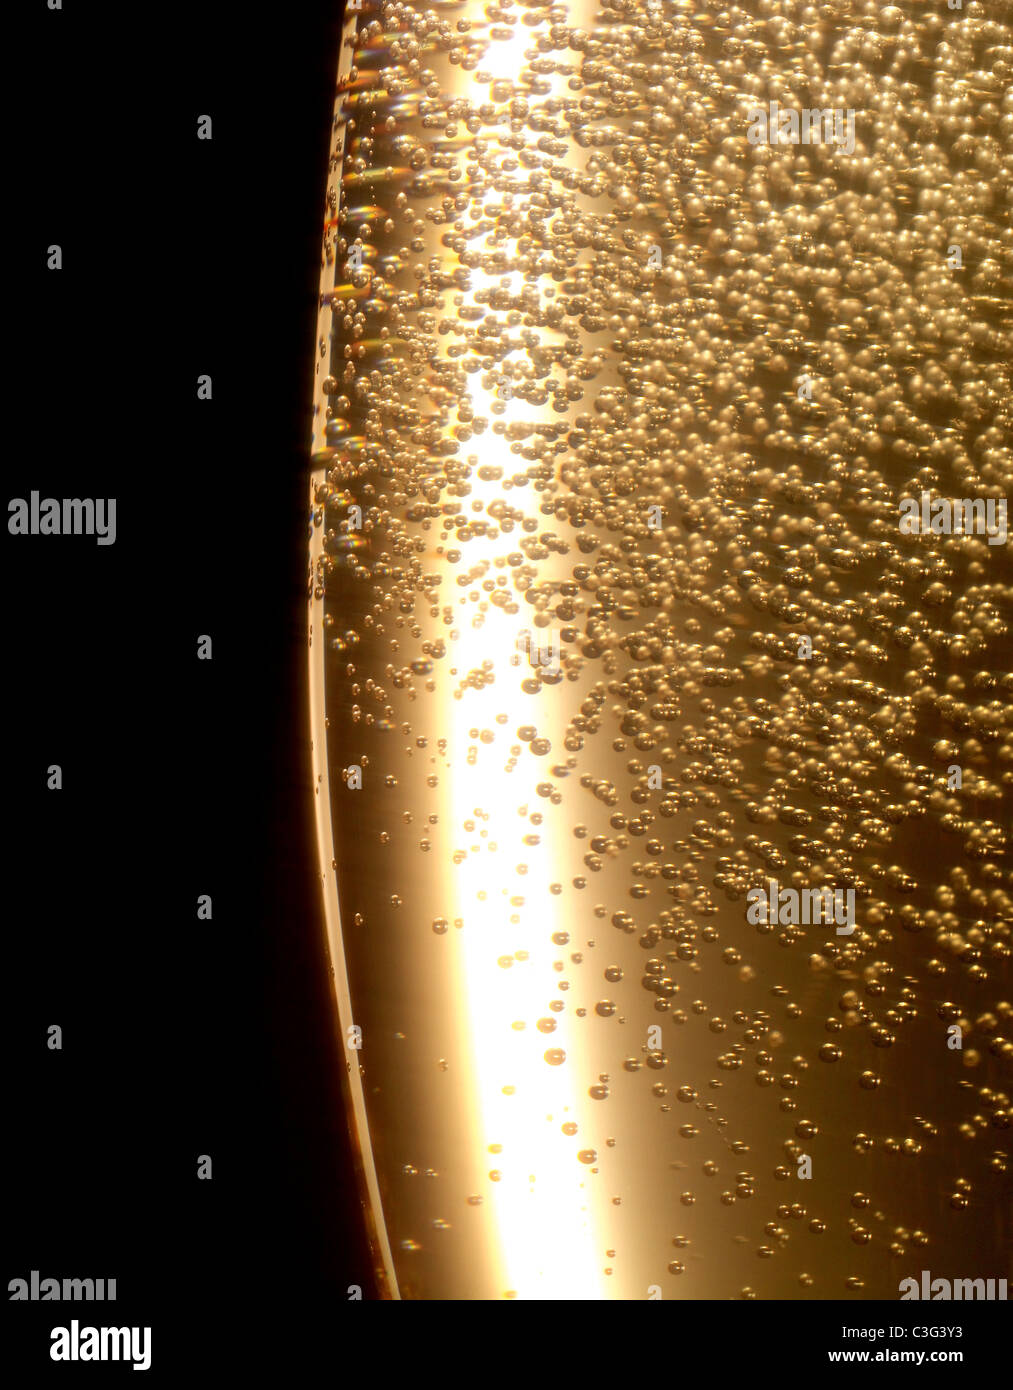 champagne - Stock Image